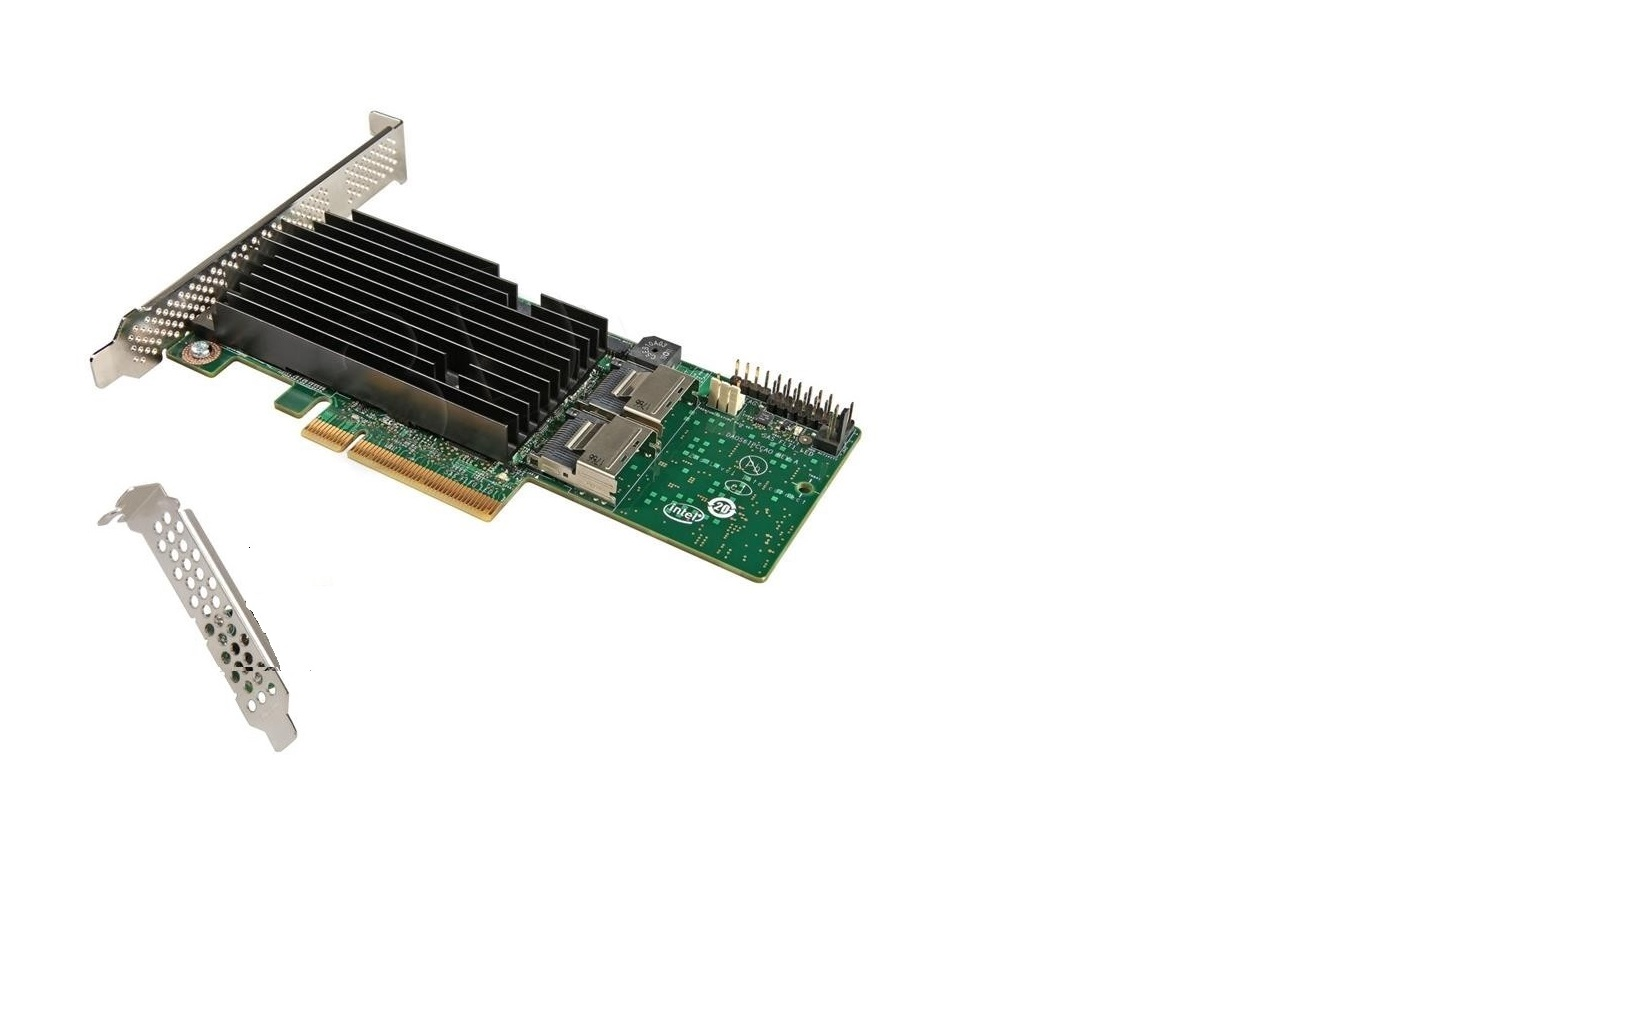 Lot of 20pcs Intel 8-Ports SAS Controller Serial Attached SCSI PCI Express 2.0 x8 Plug-in Card RAID RMS25PB080-20-Pack